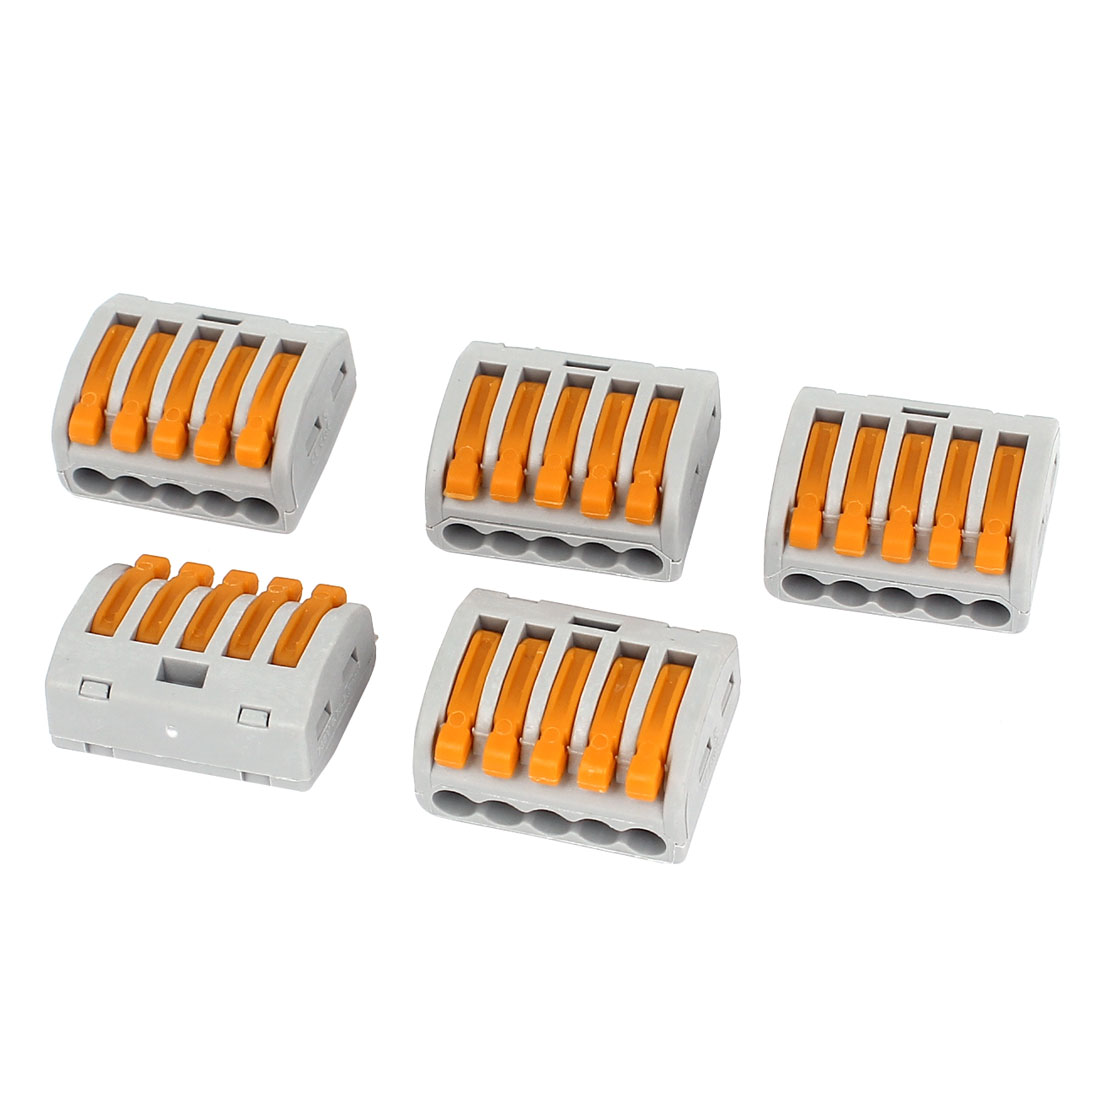 AC400V 32A 0.08-2.5mm2 0.08-4.0mm2 5 Way Terminal Block Push Wire Connector 5Pcs